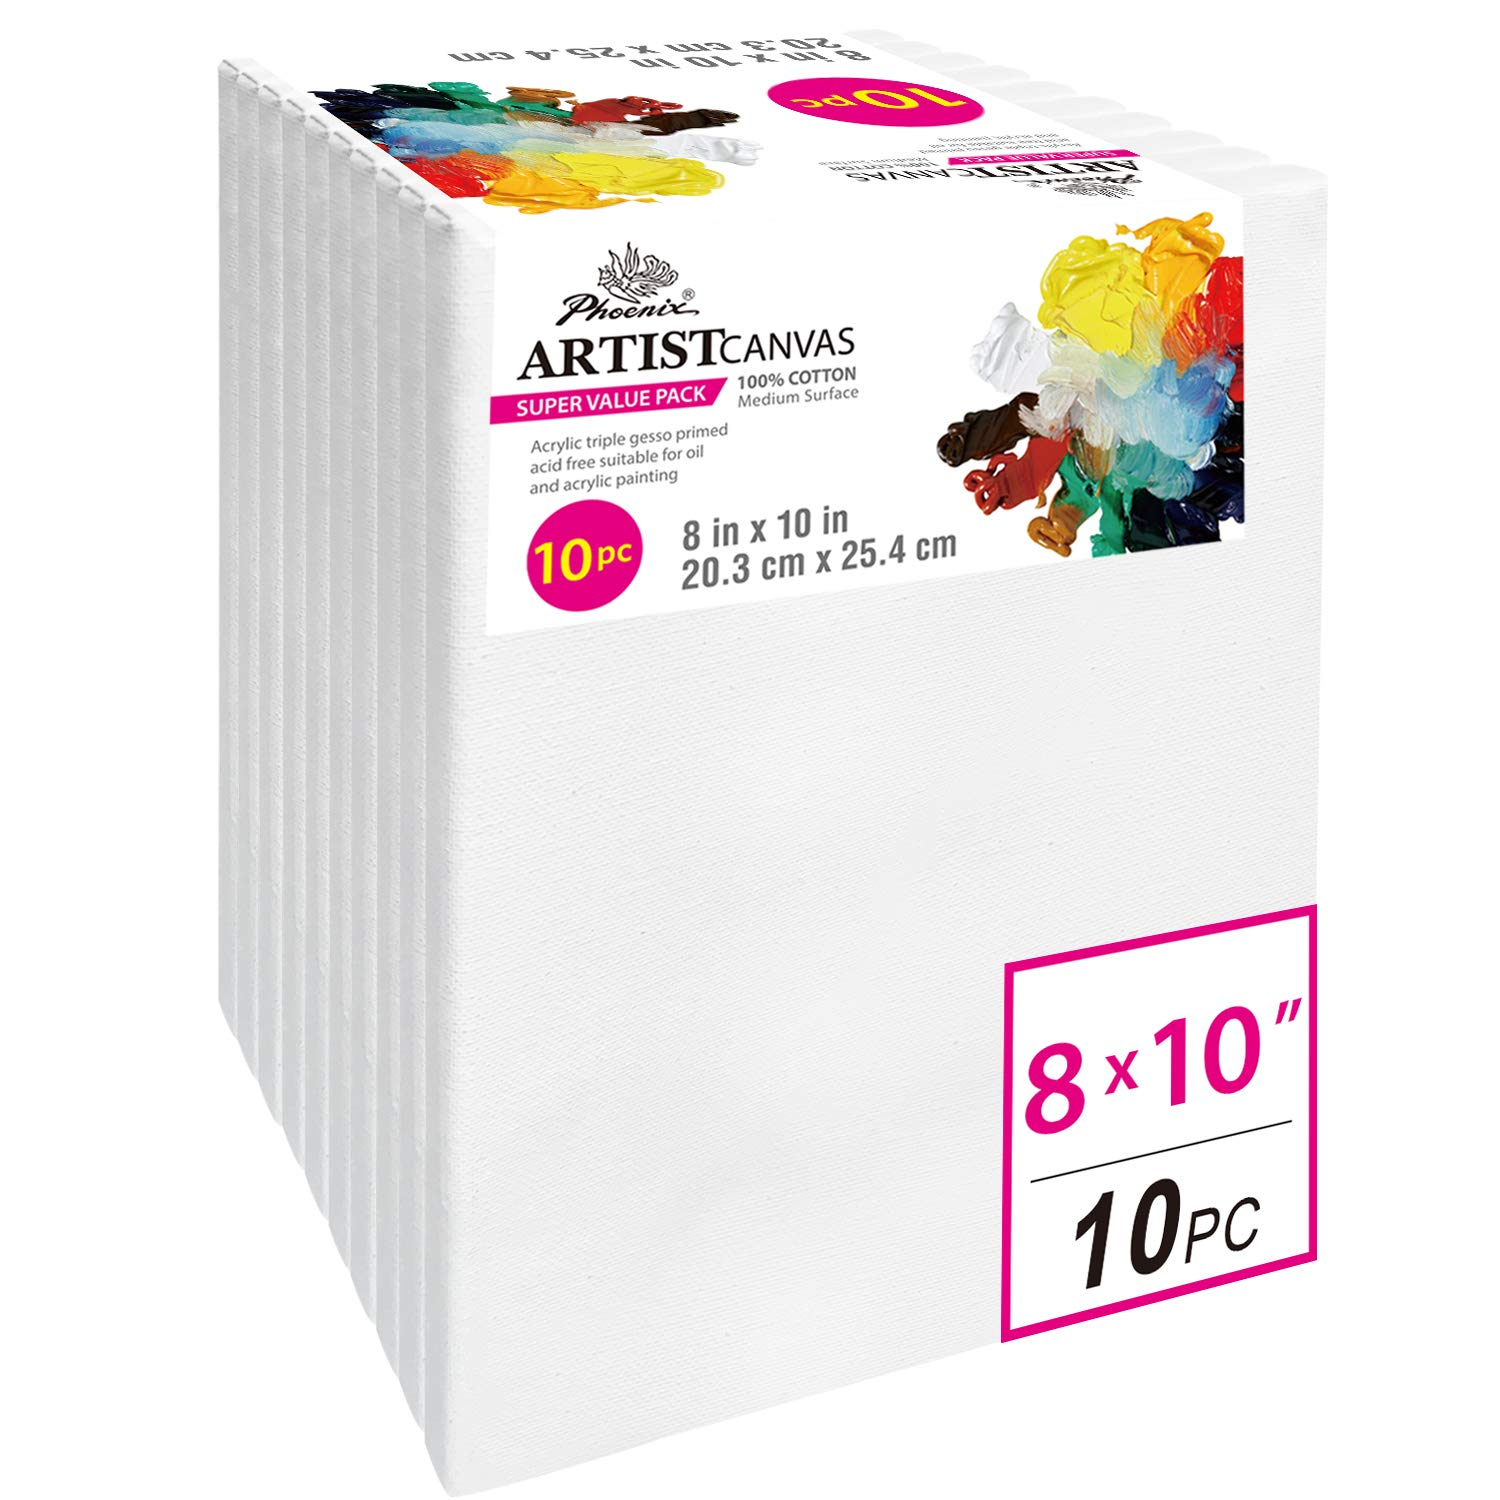 PHOENIX Pre Stretched Canvas for Painting - 8x10 Inch / 10 Pack - 5/8 Inch Profile of Super Value Pack for Oil & Acrylic Paint by PHOENIX